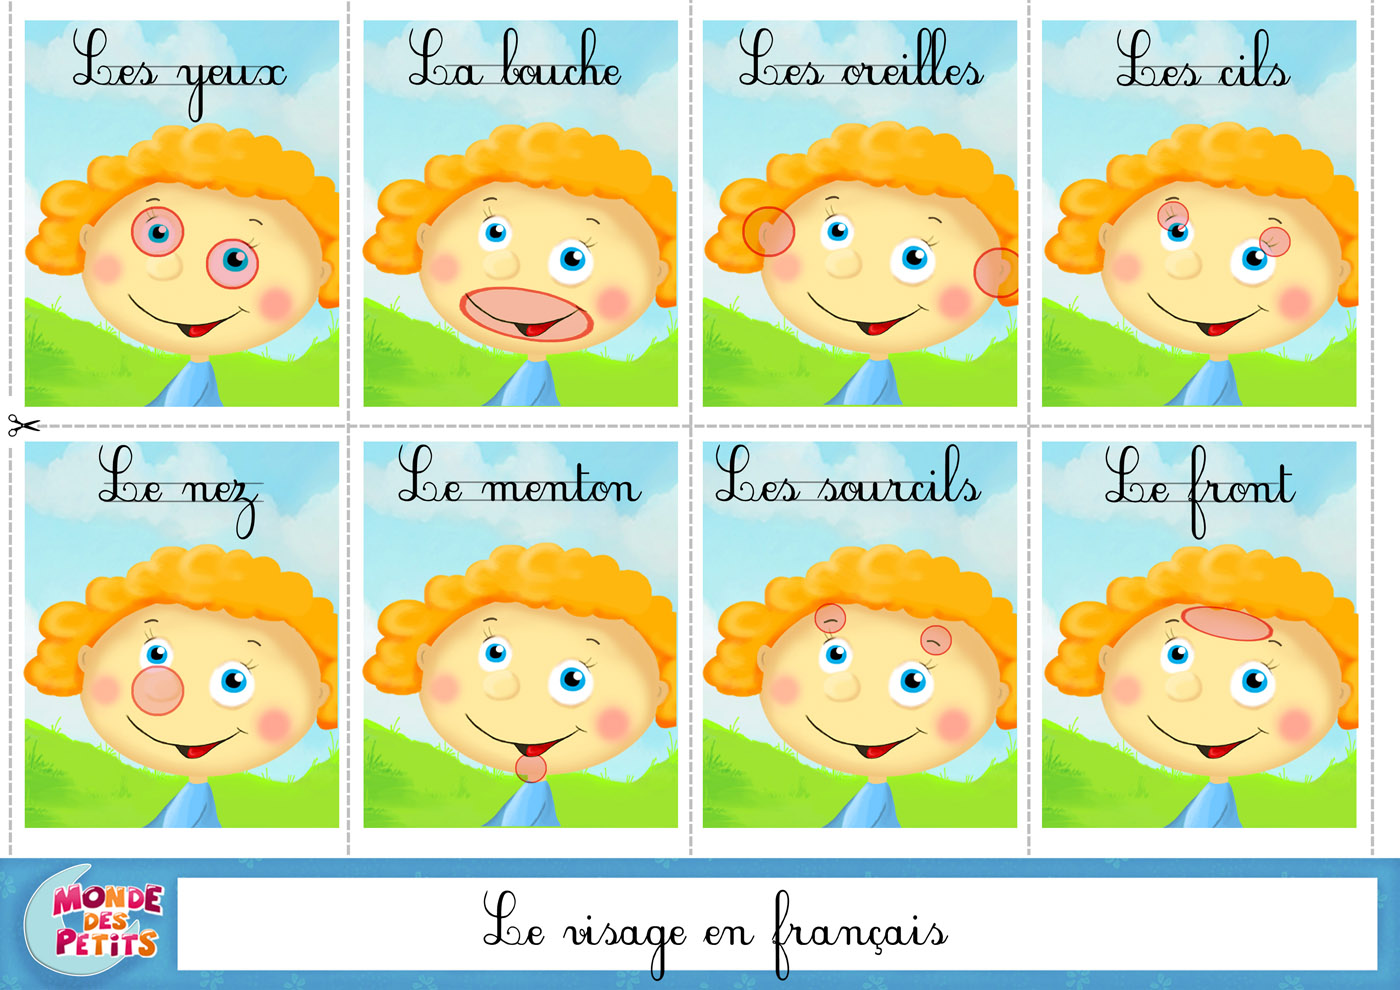 Hervorragend apprendre-carte-visage-francais.jpg (1400×990) | French Immersion  DP19